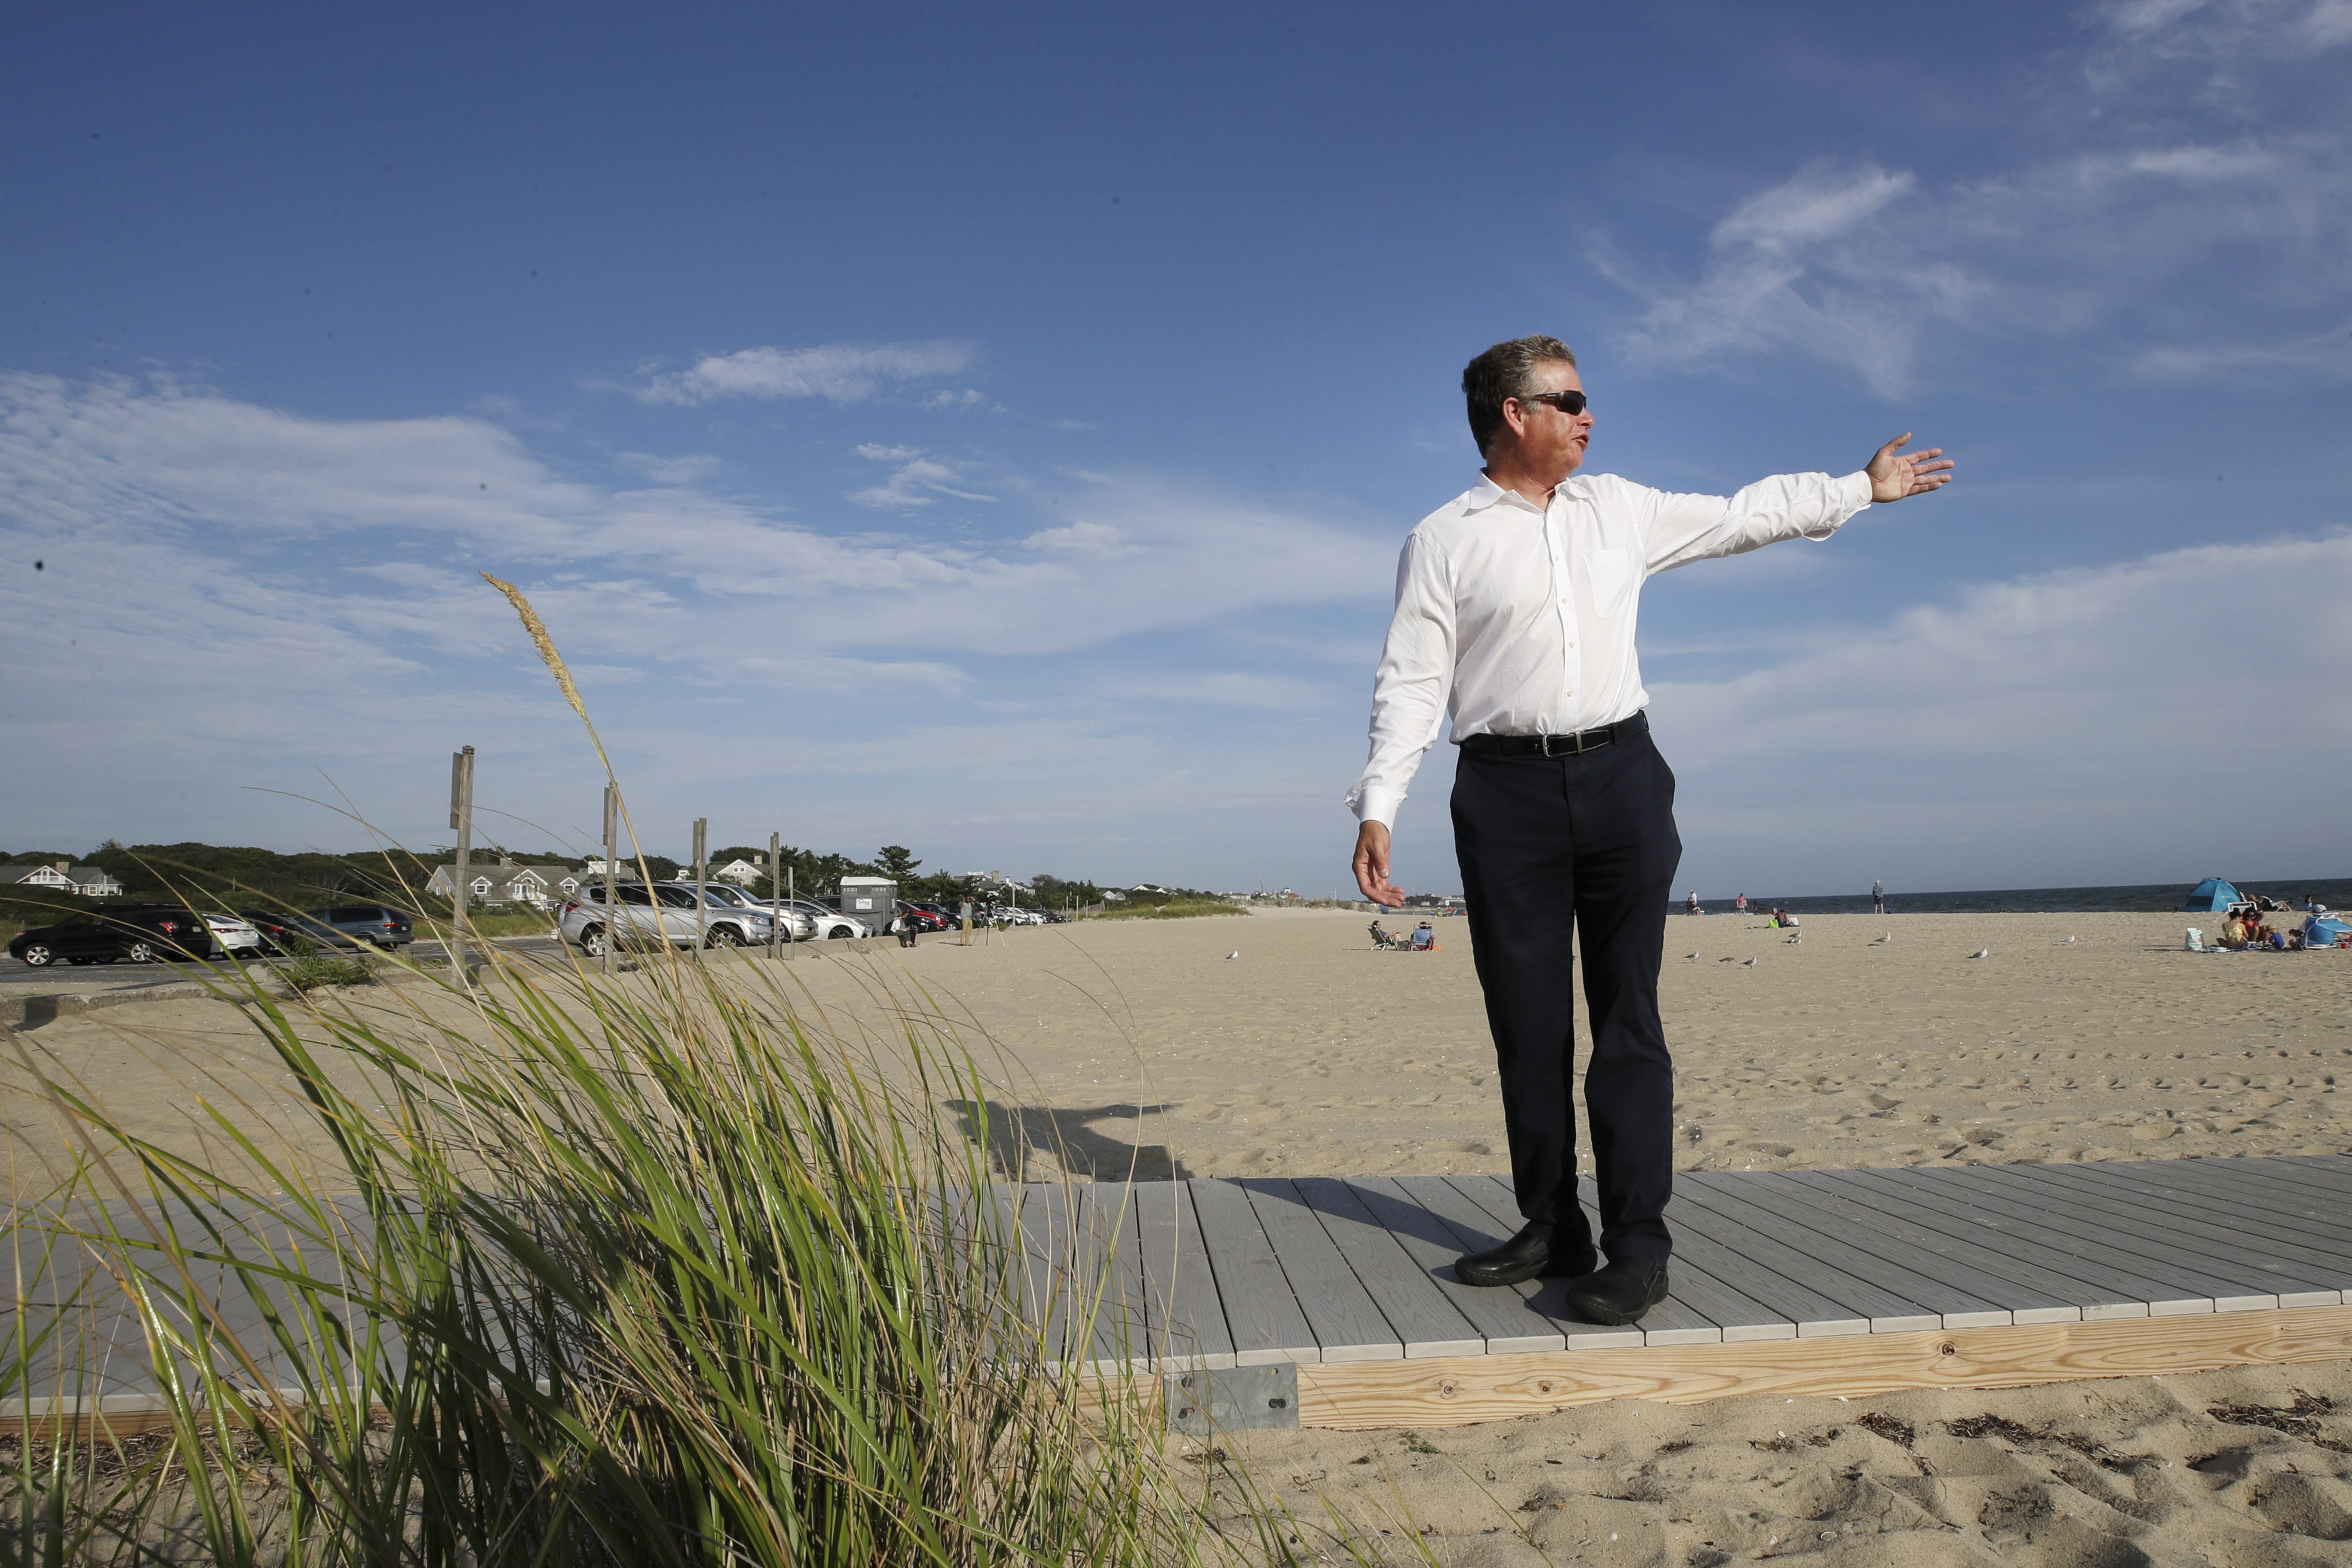 In this Aug. 21, 2019 photo, Andrew Gottlieb, executive director of the Association to Preserve Cape Cod, indicates where the proposed Vineyard Winds' buried energy cables would stretch from offshore wind turbines, through the ocean, under the sand and parking lot at Covell Beach in Centerville, Mass. to a landing point onshore. The cables would then extend to a grid connection point inland. But as Trump has made clear how much he hates wind turbines, all the offshore wind projects, including the nation's first utility-scale offshore wind project, an 84 turbine, $2.8 billion wind farm slated to rise 15 miles off Martha's Vineyard, have stalled. (AP Photo/Elise Amendola)